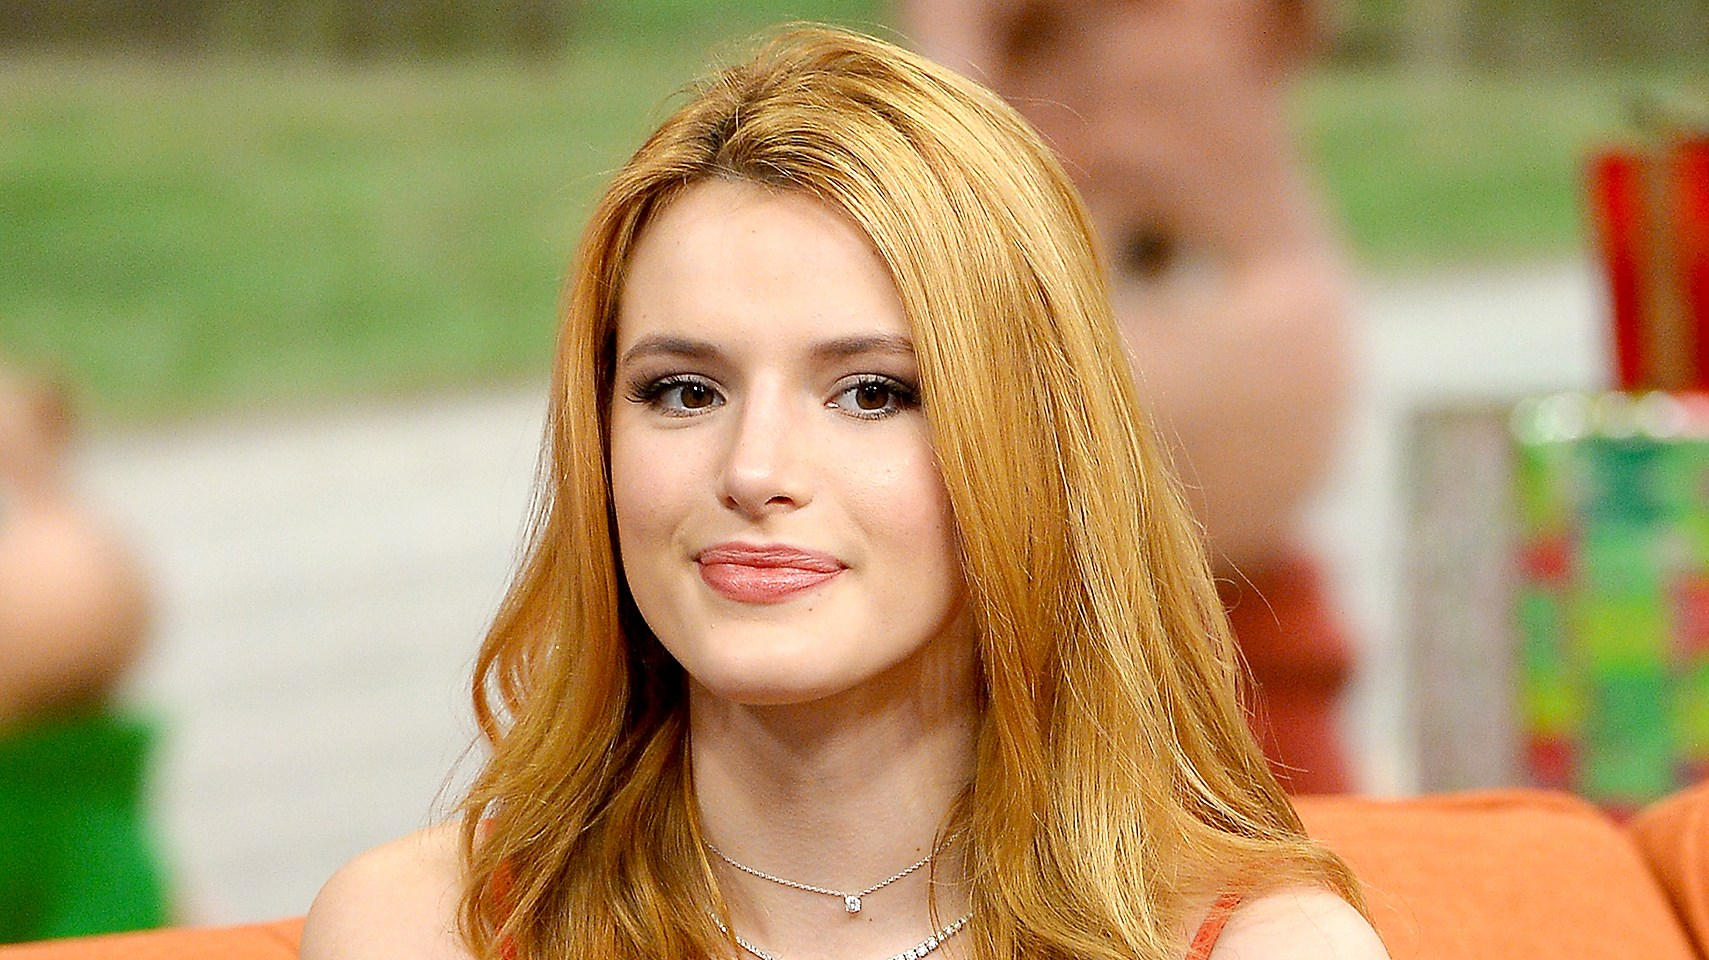 Bella Thorne on the set of Univisions Despierta America to promote Alvin and the Chipmunks: The Road Chip at Univision Studios on December 14, 2015 in Miami, Florida.